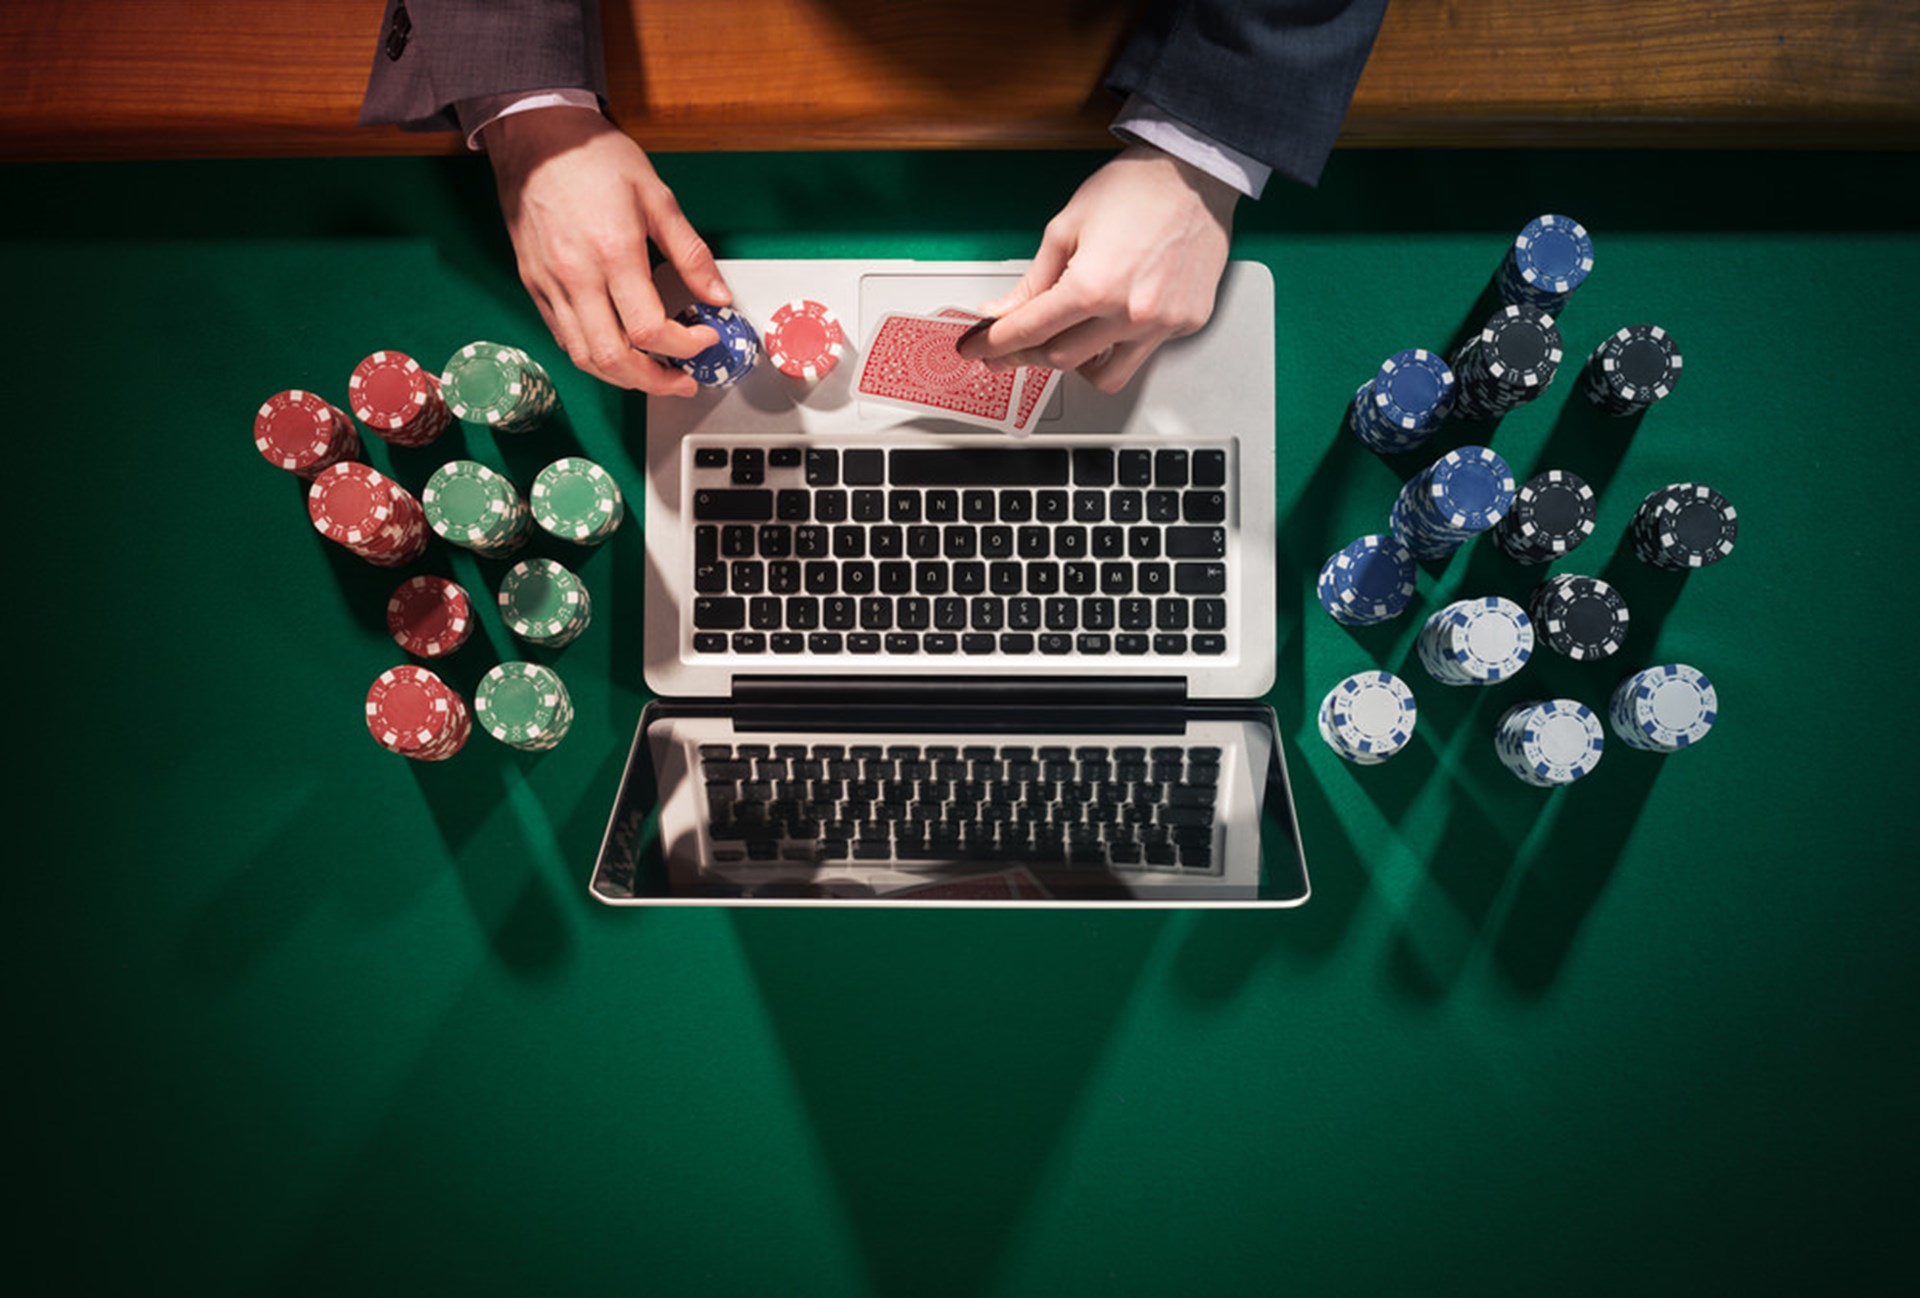 Background Of Video Clip Casino Poker Video Game And Also It Has The Conventional Plans